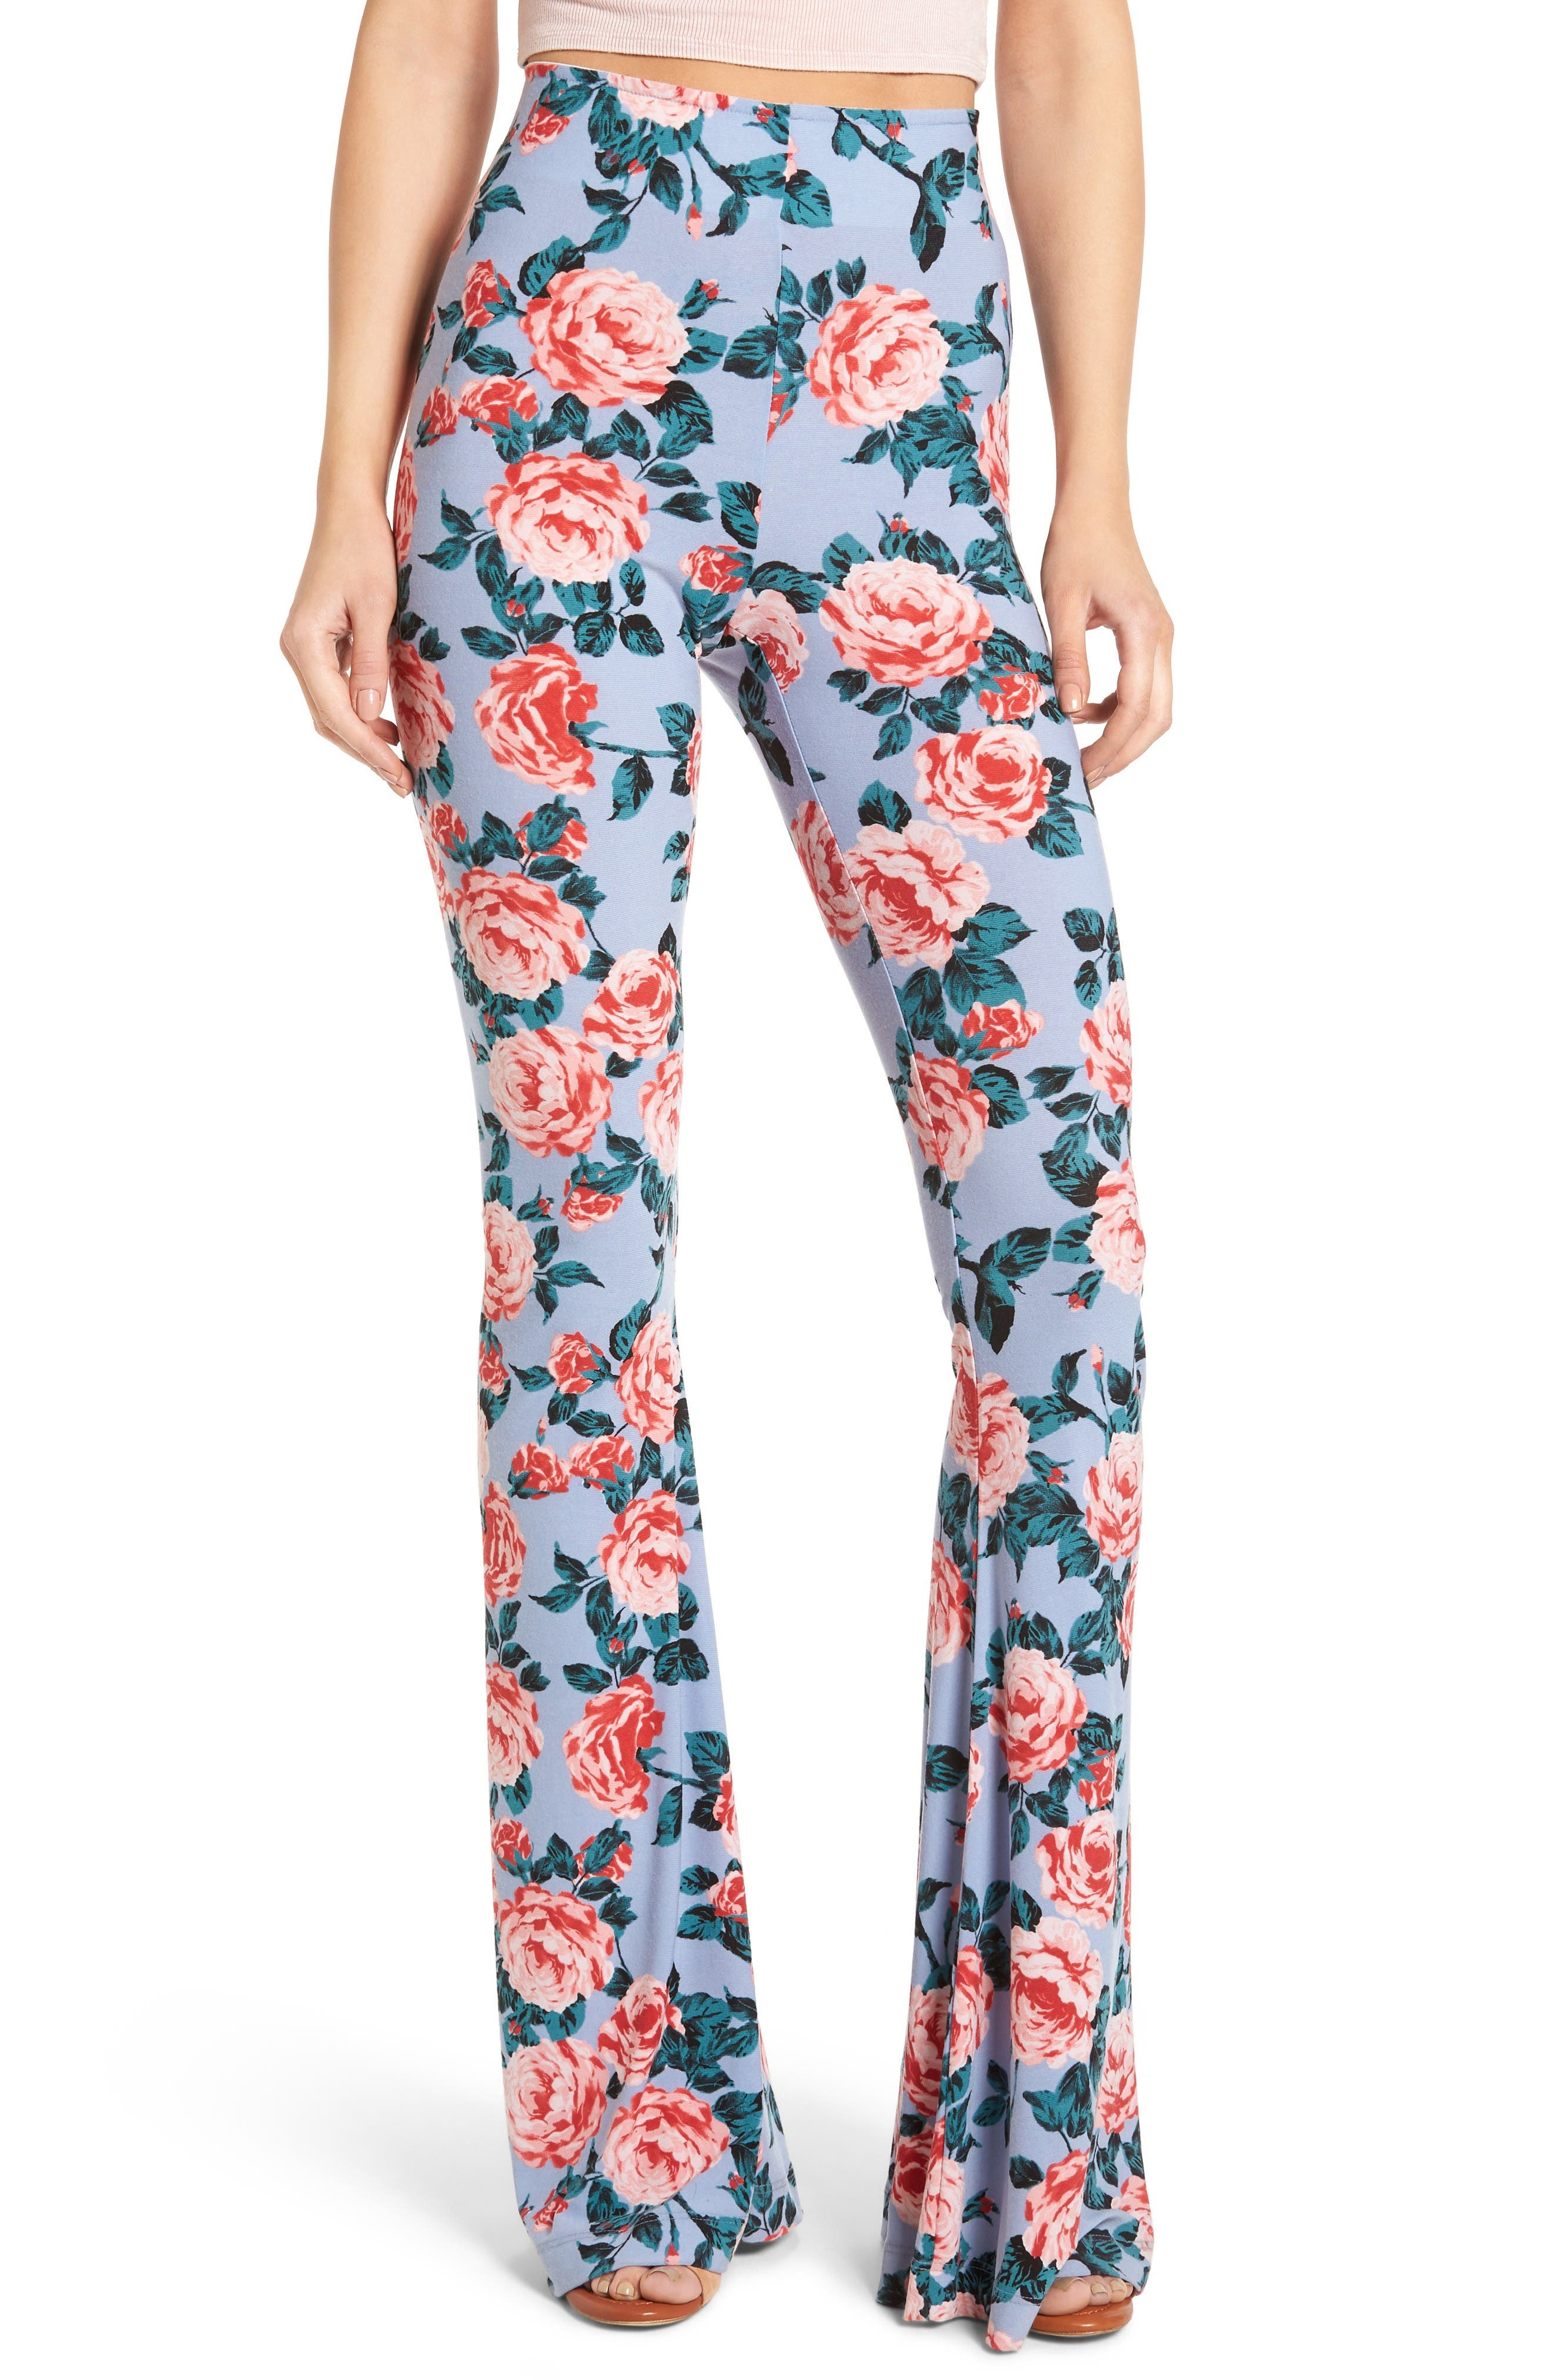 Main Image - Show Me Your Mumu Bam Bam Flare Pants